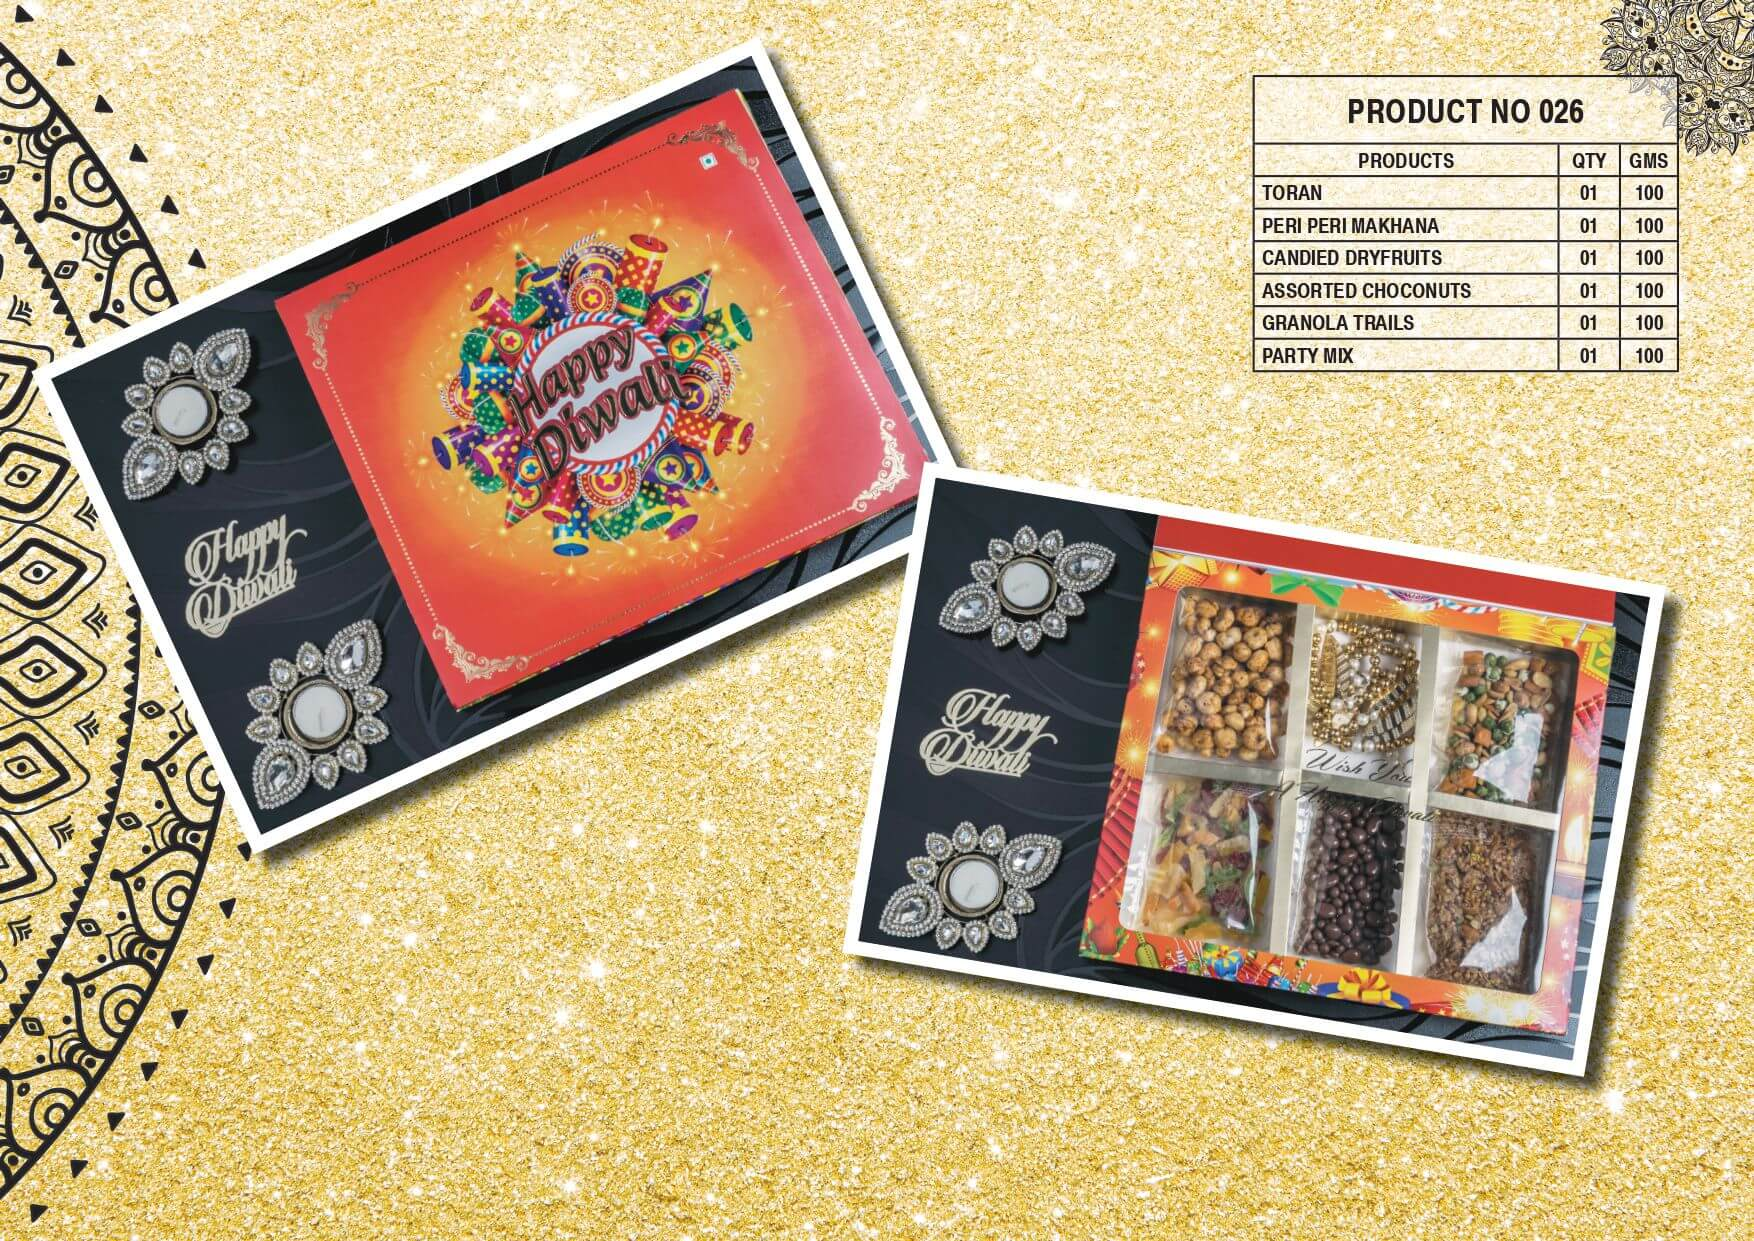 Diwali Gifts Supplier In Mumbai PRODUCT NO 026